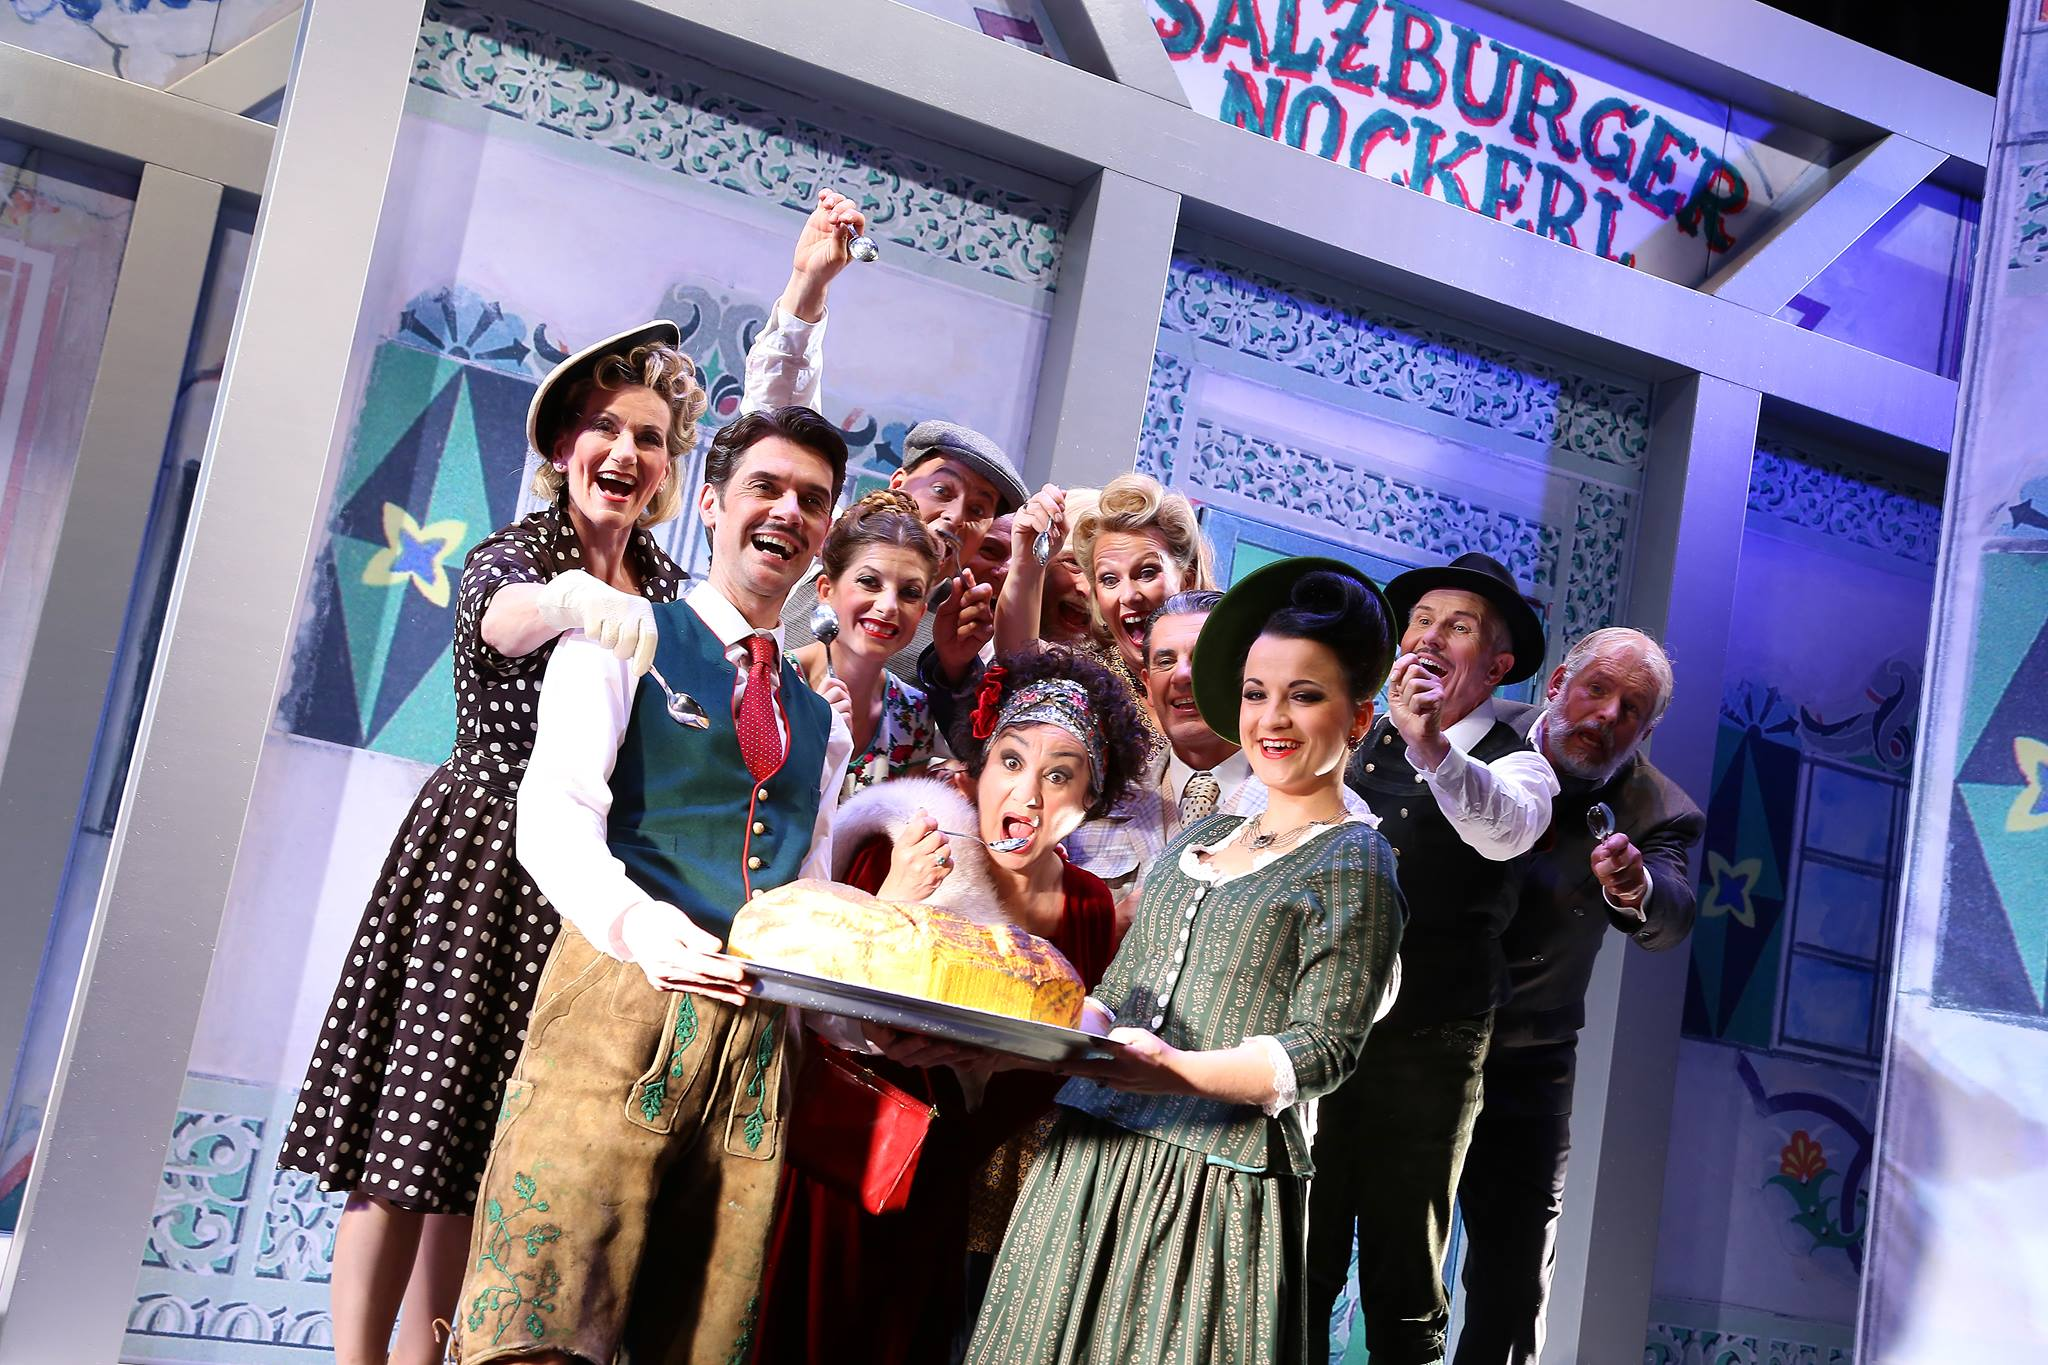 """Saison in Salzburg"" at the 2017 Lehár Festival Bad Ischl (Photo: Foto Hofer)"